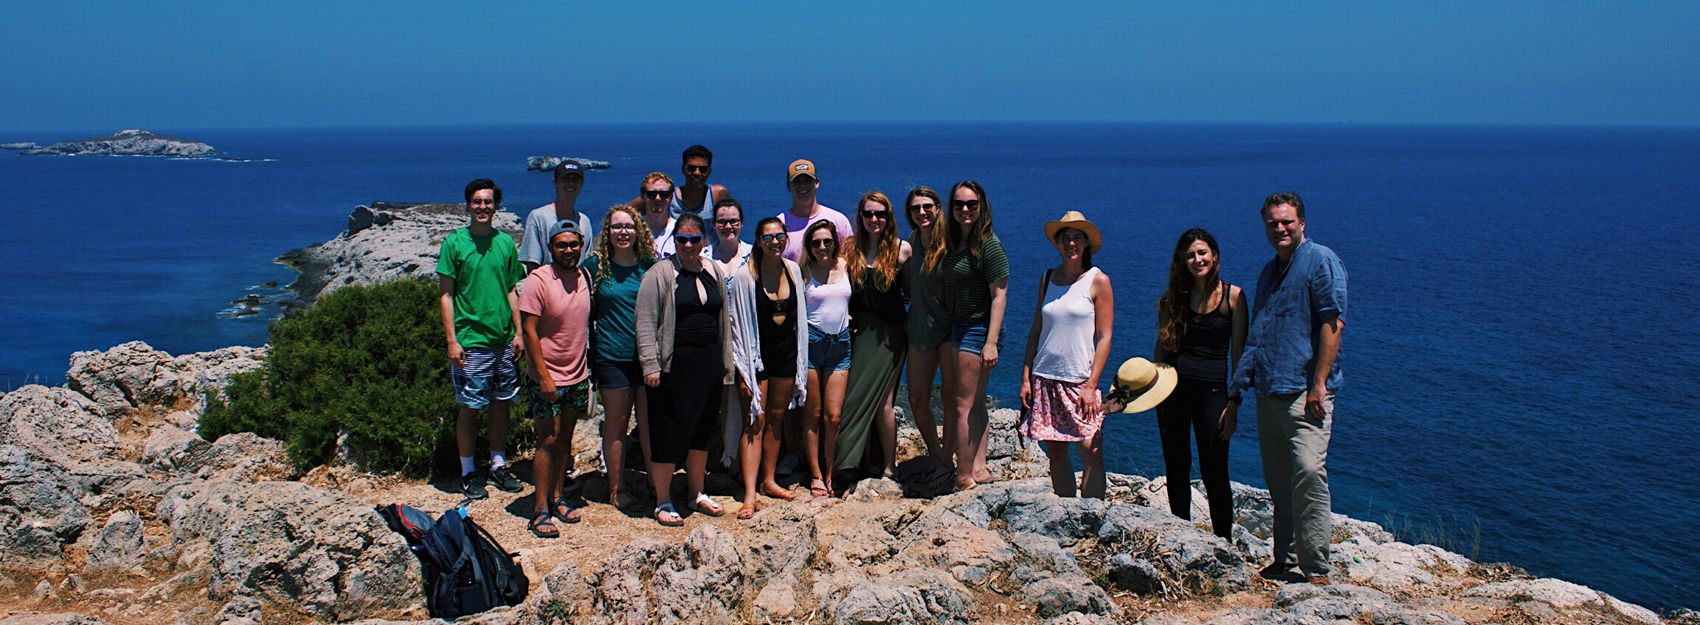 Faculty-Led Study Abroad Group in Cyprus